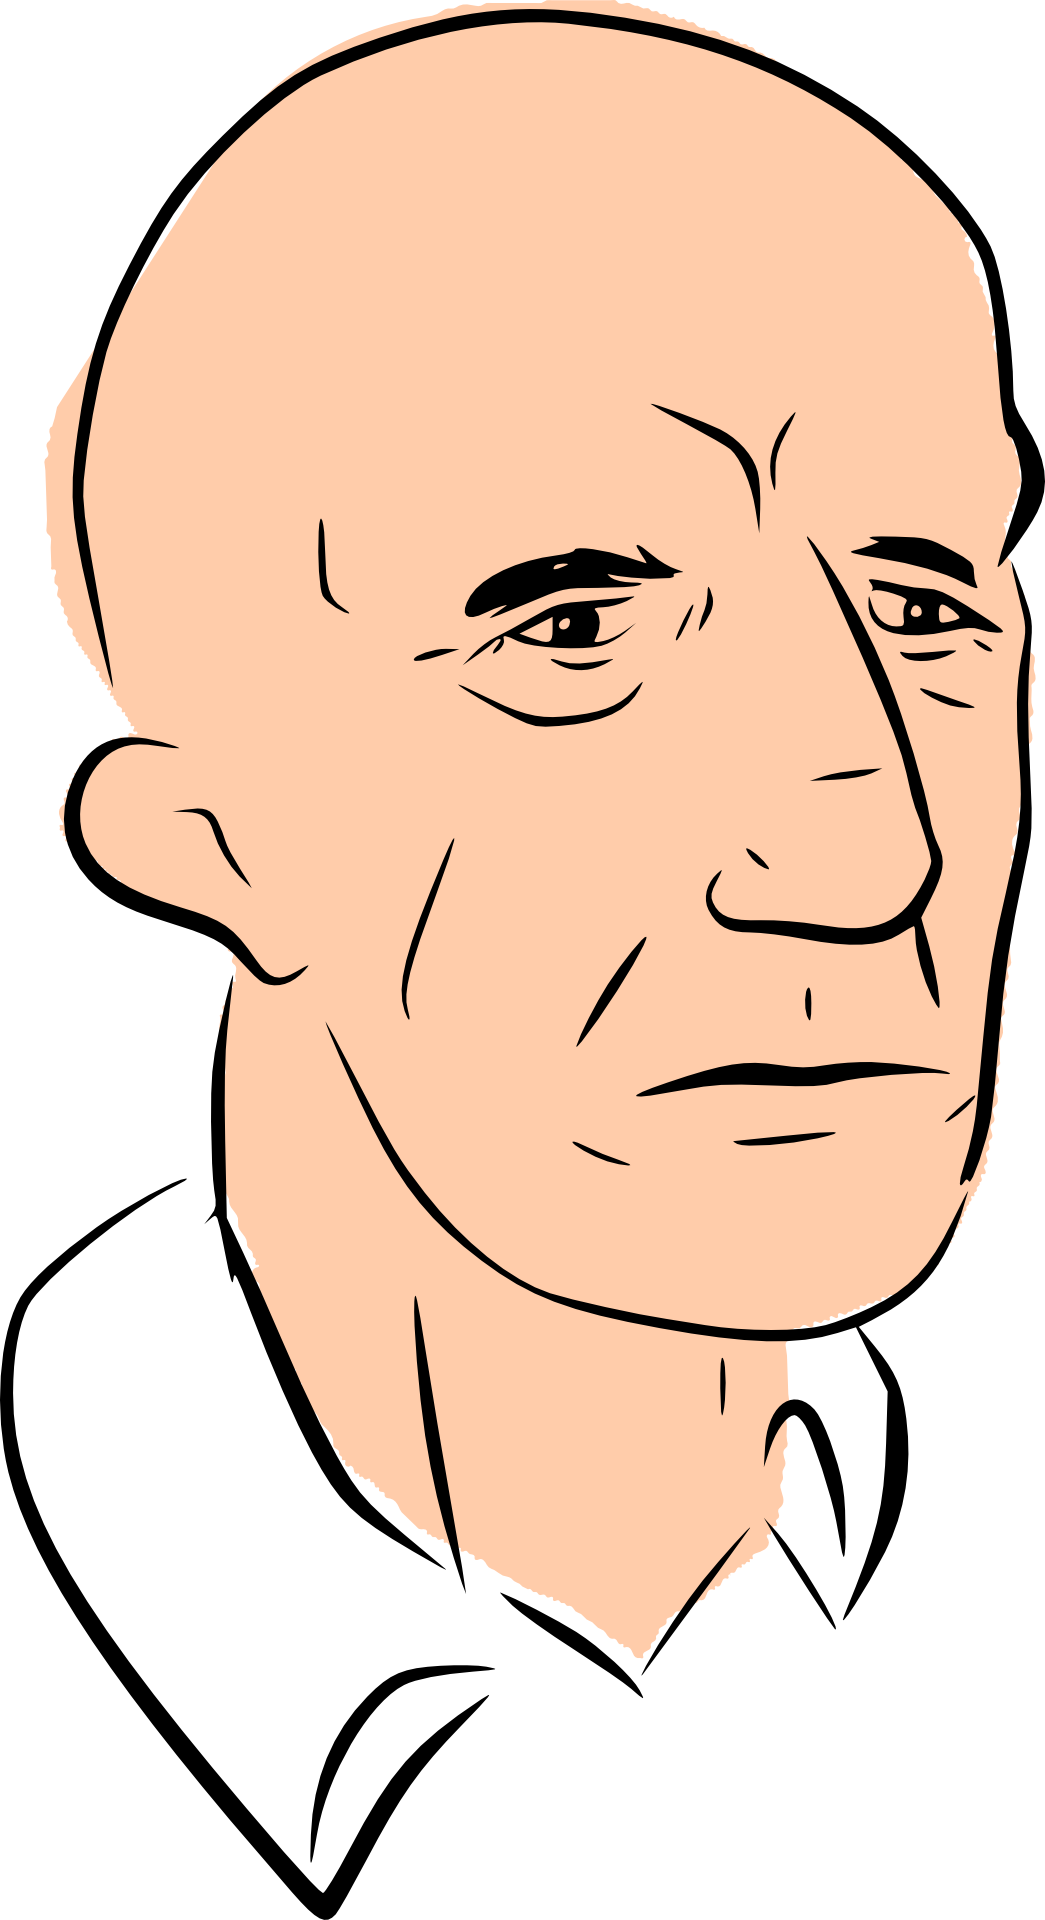 png library stock Bald clipart bald head. Make free image .